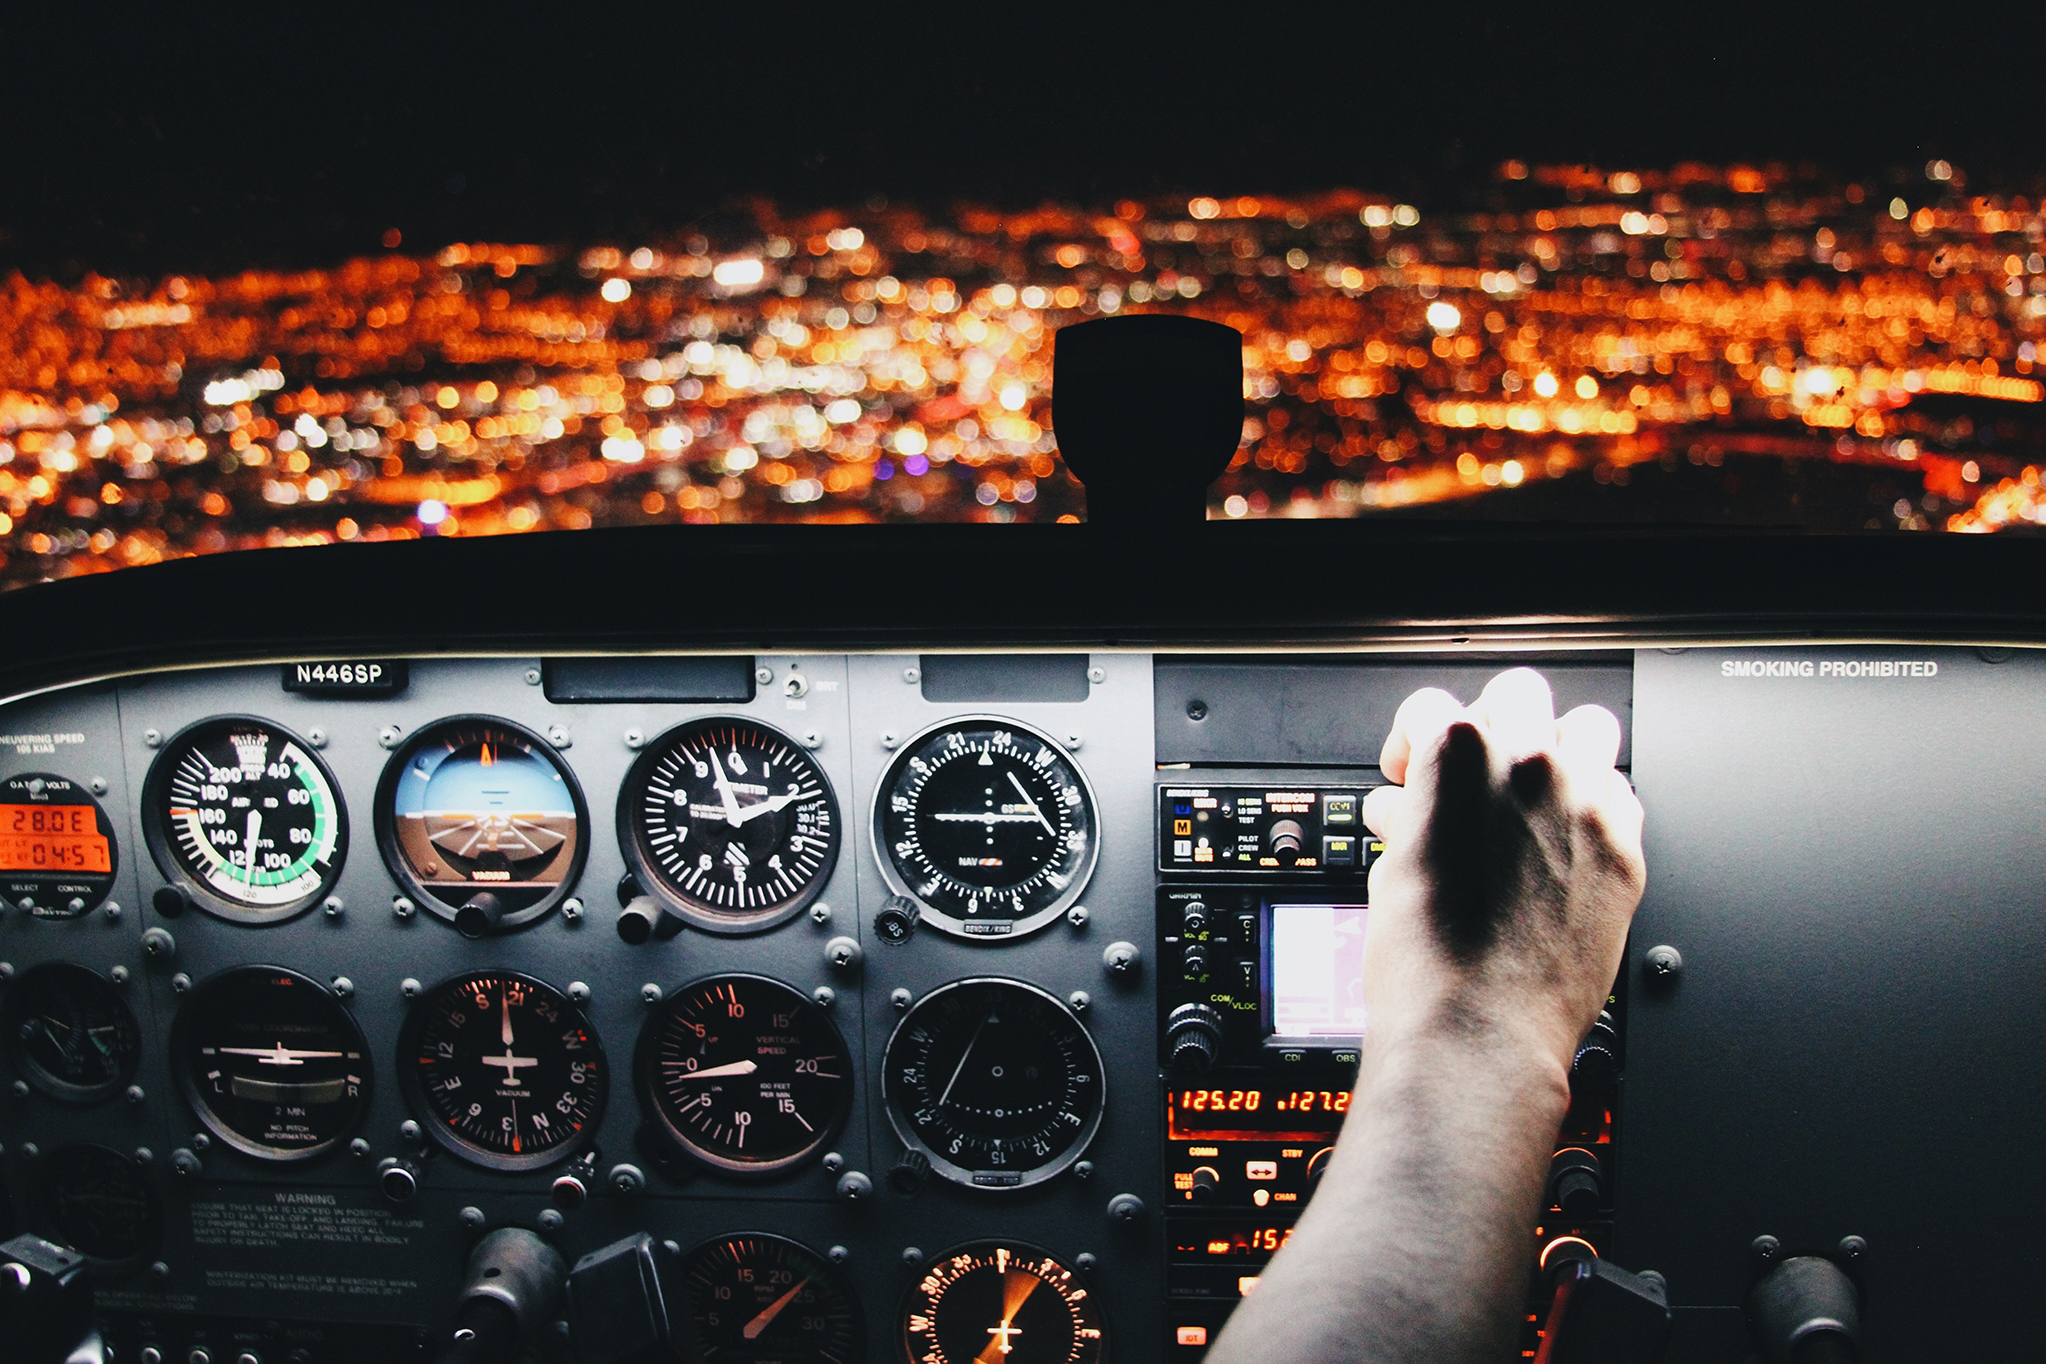 The controls of a plane